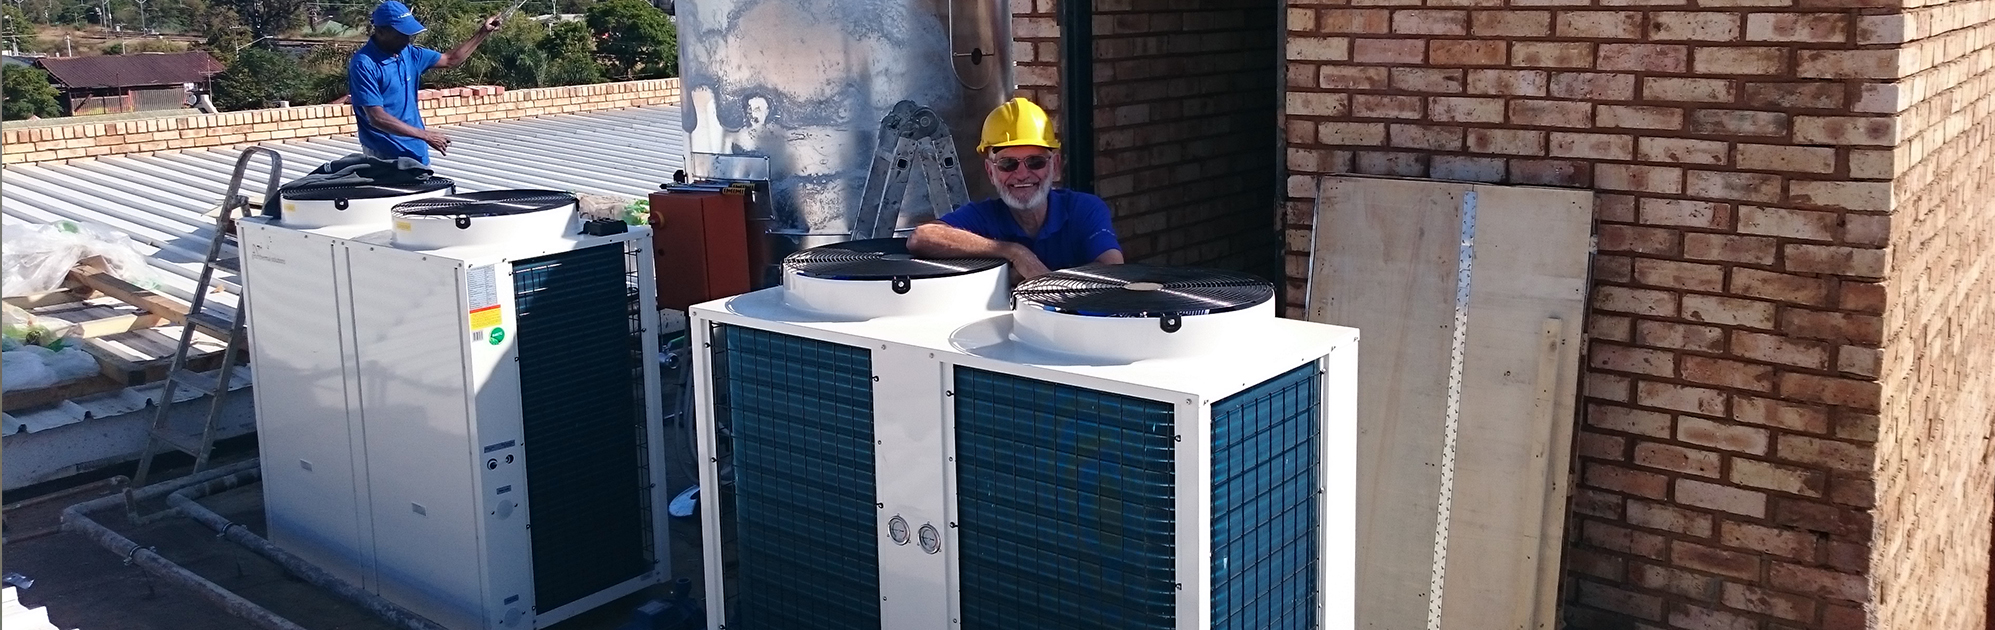 commercial-heat-pumps